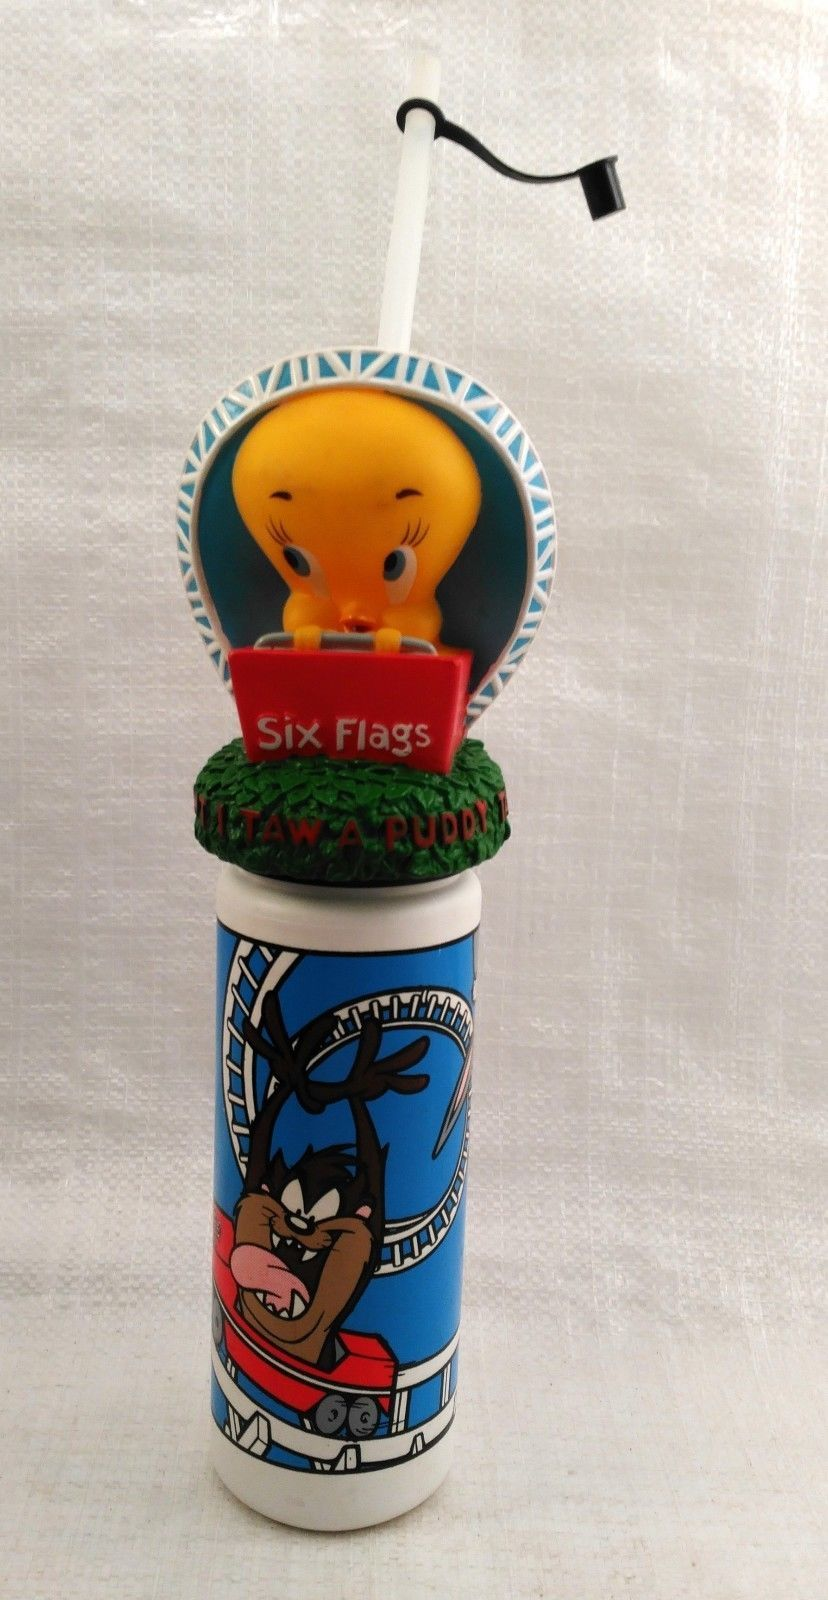 Six Flags Souvenir Tweety Bird Water Bottle W/ Taz and Sylvester